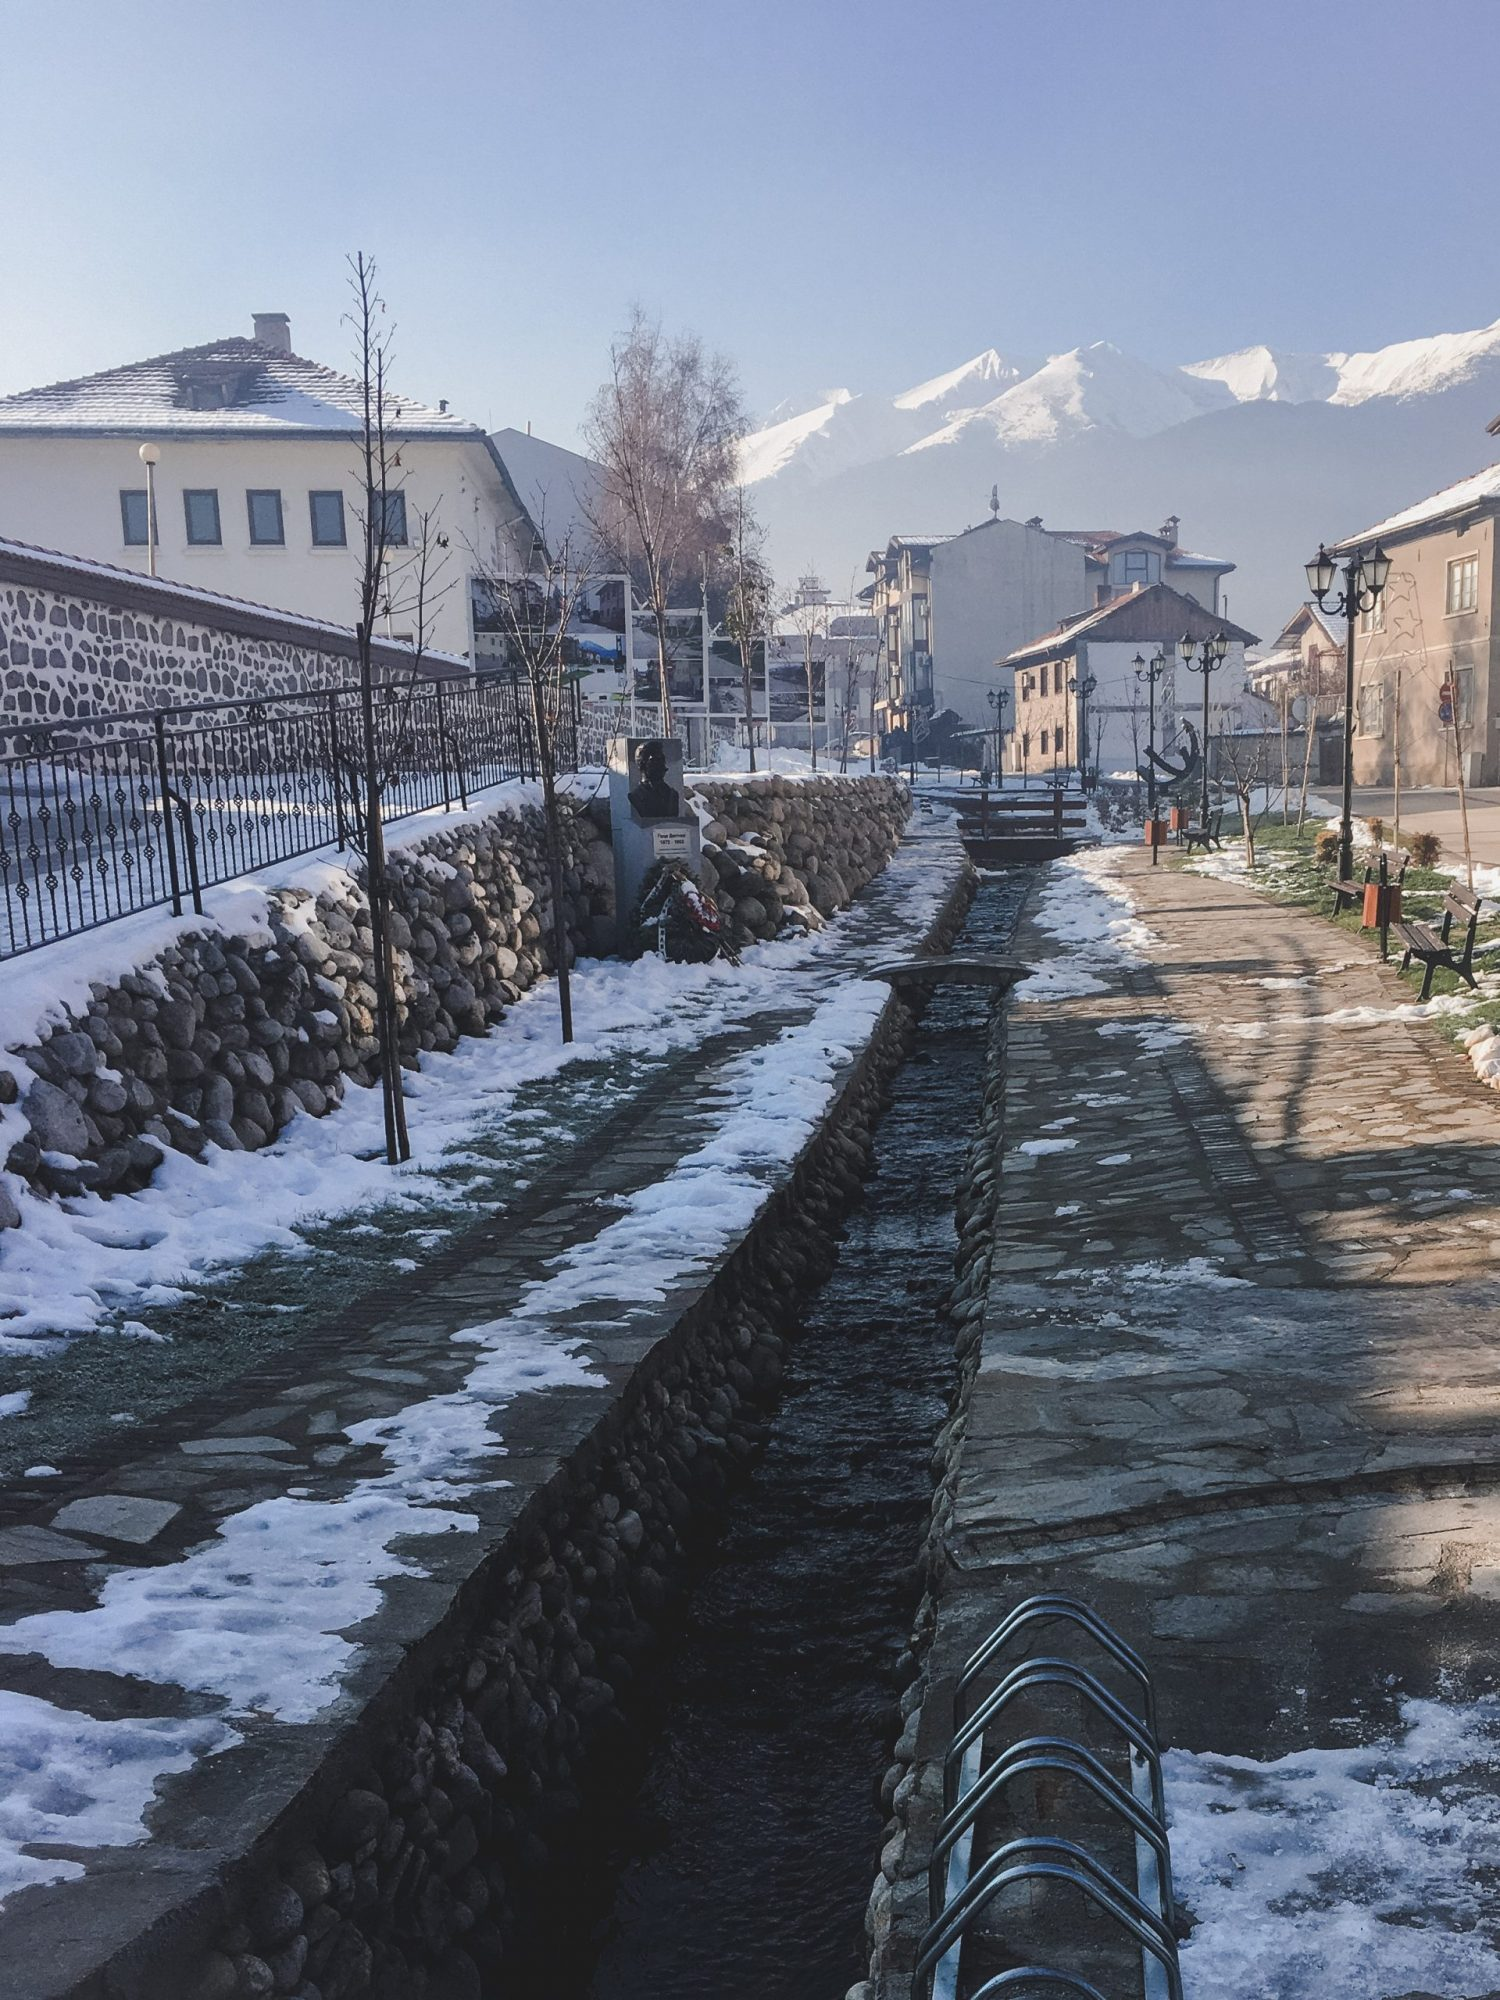 "The street ul ""Gotse Delchev"" in Bansko, Bulgaria in winter. It has a stream running through it and views of snow-covered mountains."